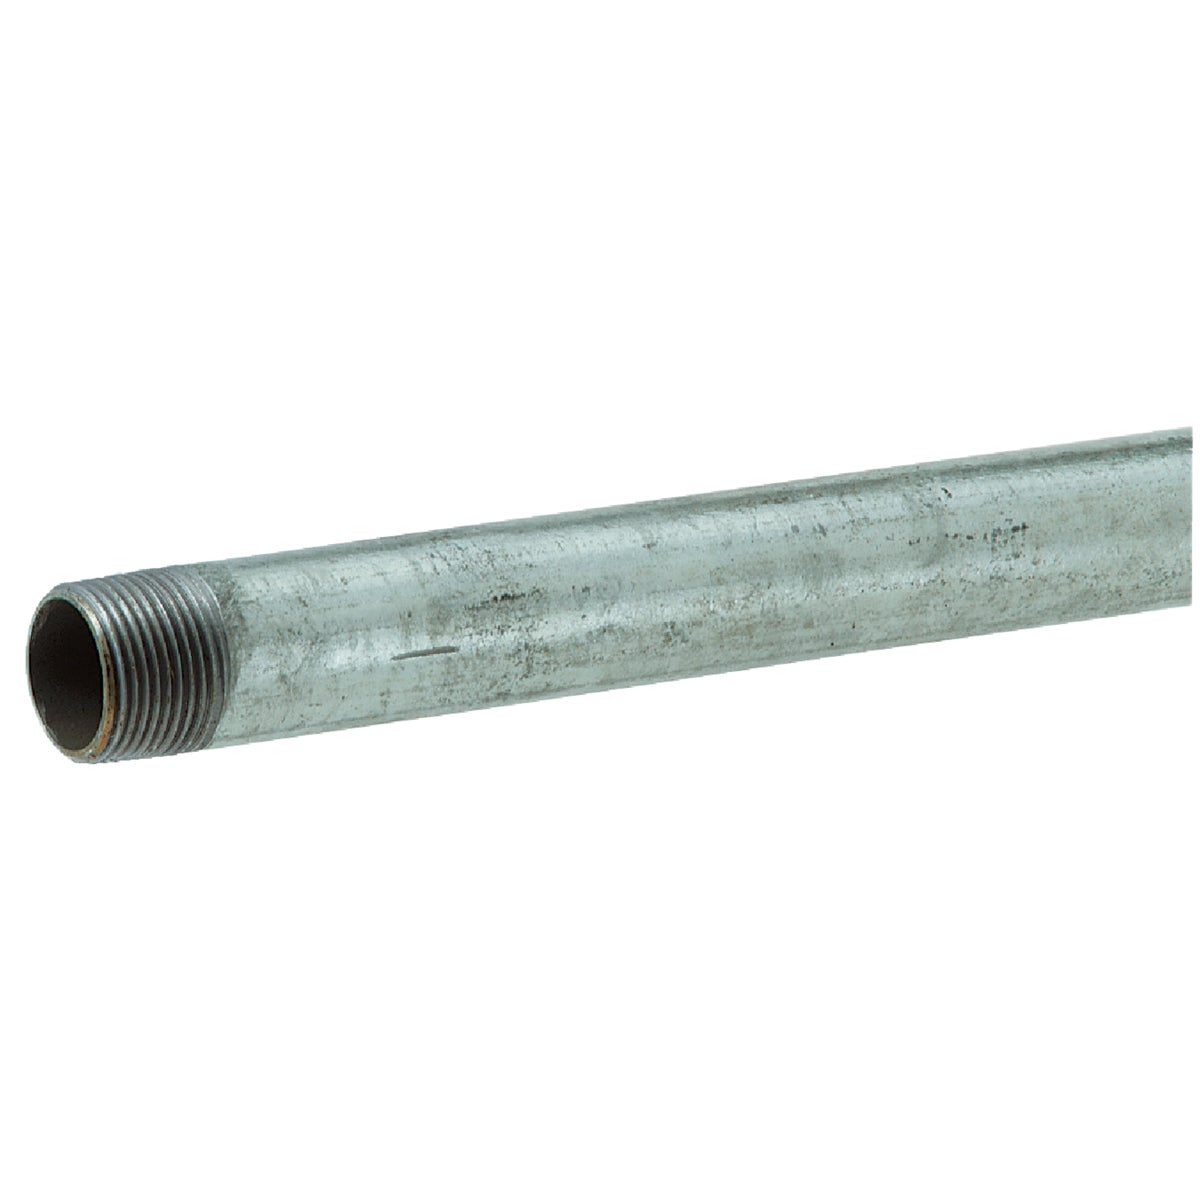 1-1/2X30GALV RDI-CT PIPE - 11/2X30 by Southland Pipe Nippl